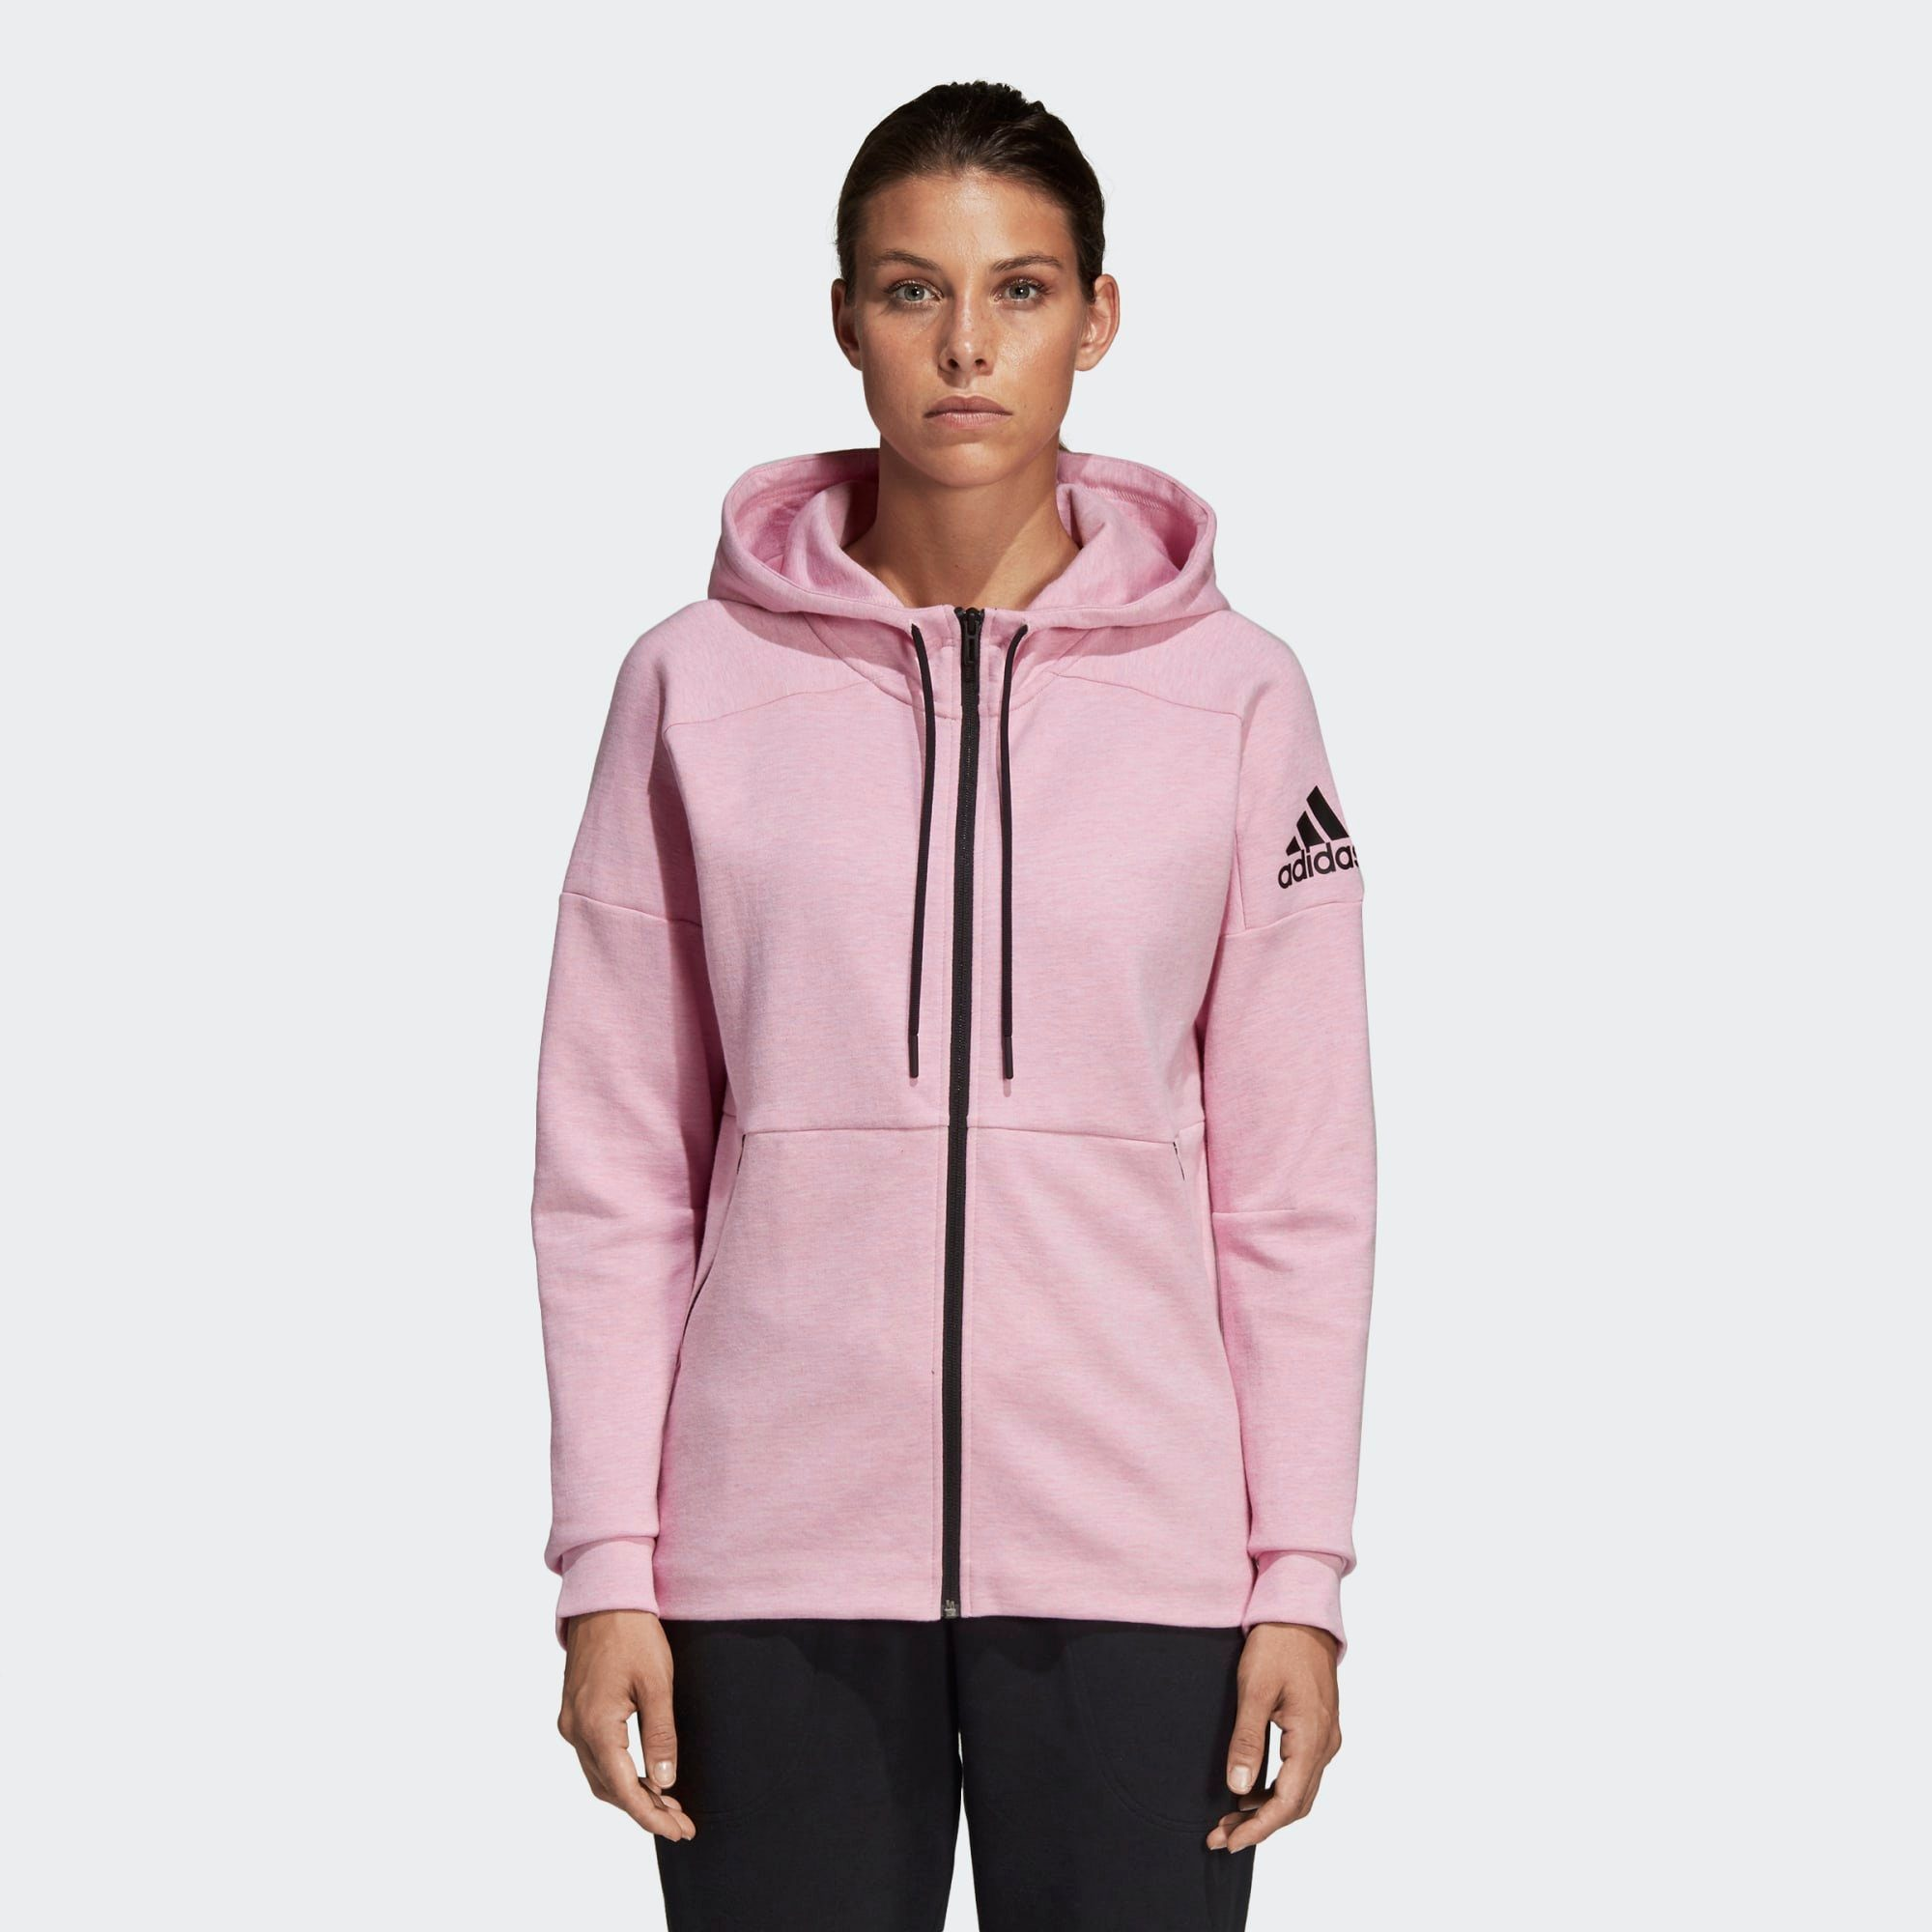 ADIDAS PERFORMANCE Sweatjacke 'ID Stadium' in pink bei ABOUT